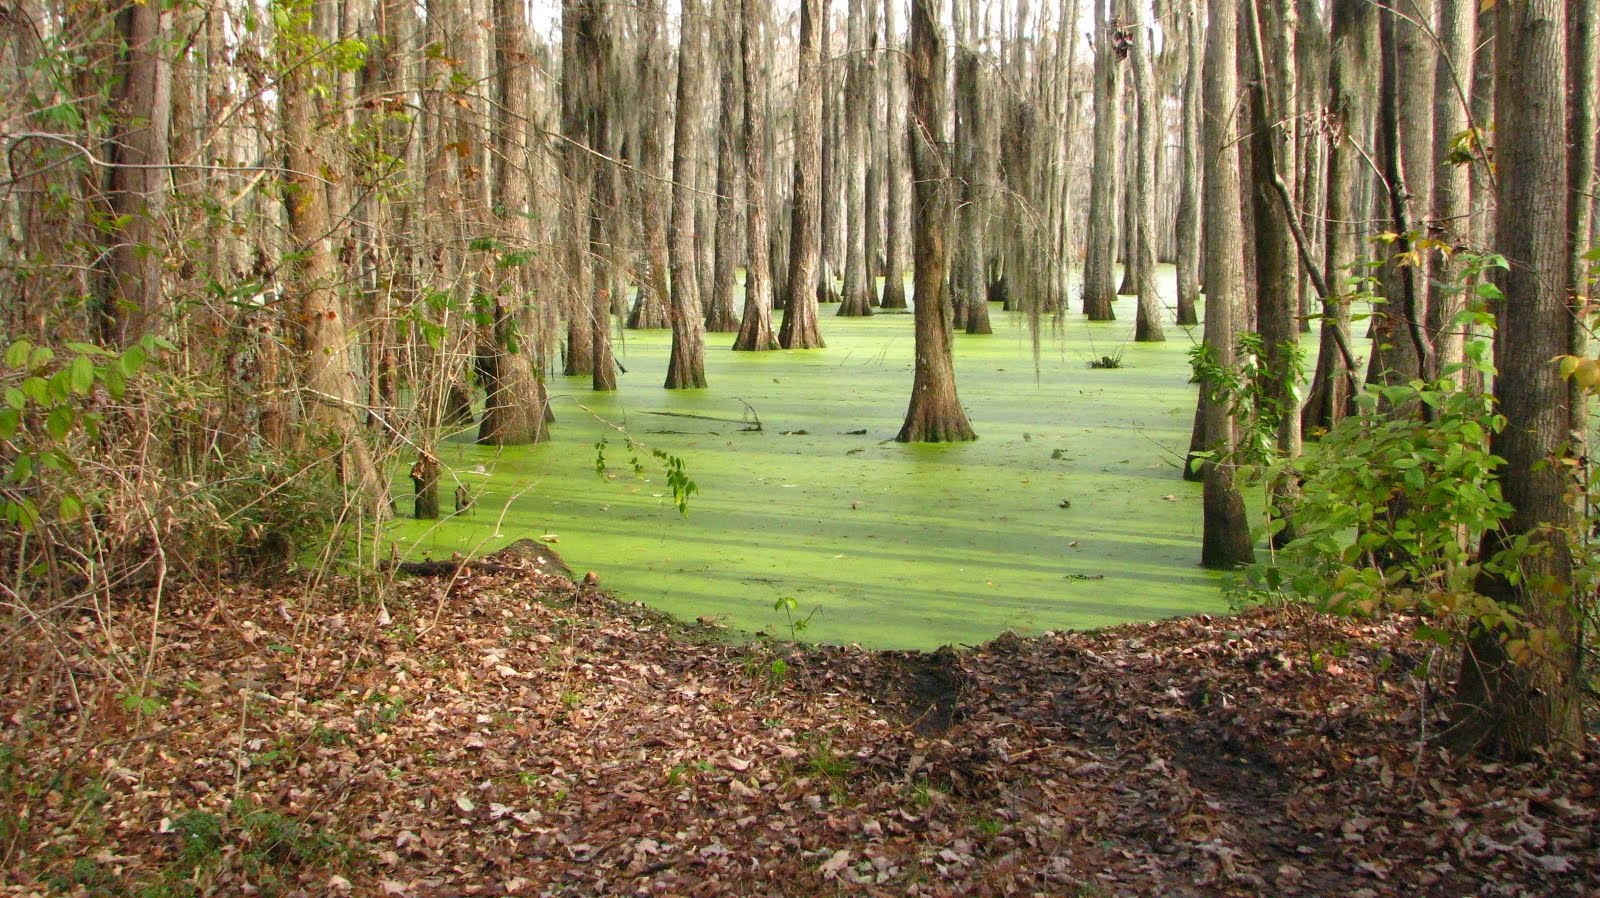 Halfway Swamp, Rimini, South Carolina BEFORE THE FLOOD OF 2015